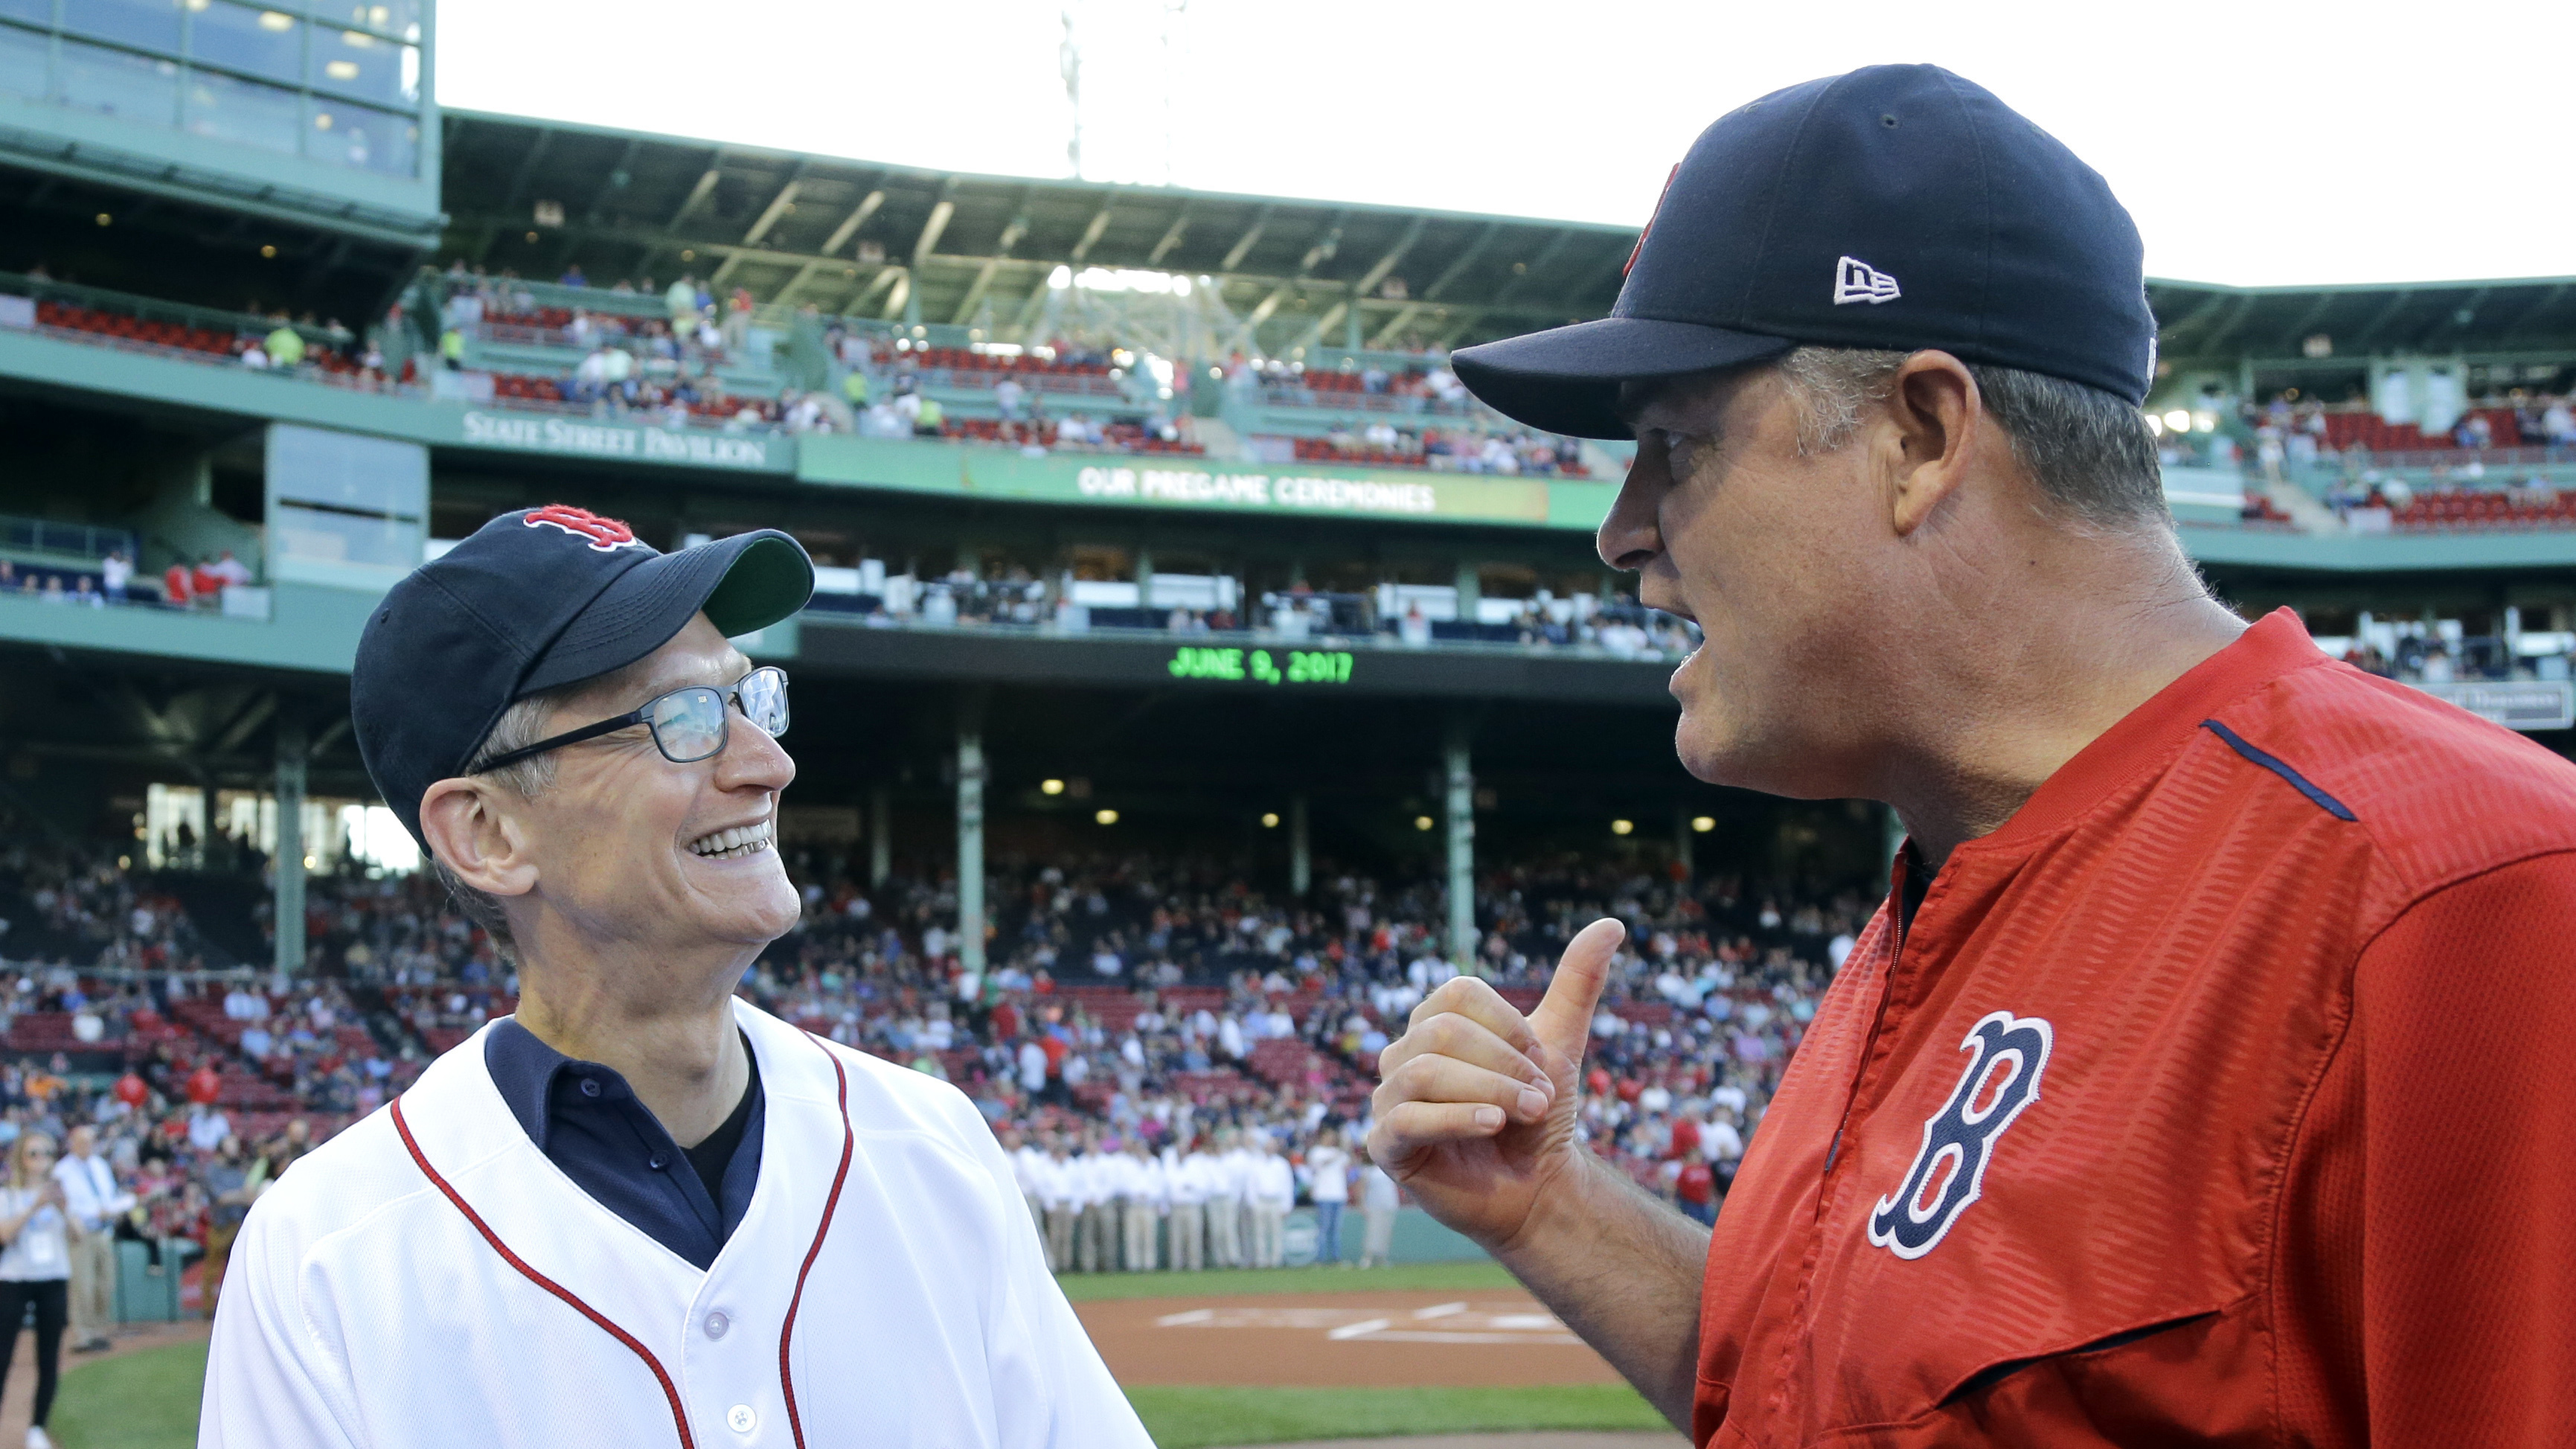 Apple CEO Tim Cook, left, chats with Boston Red Sox manager John Farrell before the Red Sox's baseball game against the Detroit Tigers at Fenway Park, Friday, June 9, 2017, in Boston. (AP Photo/Elise Amendola)